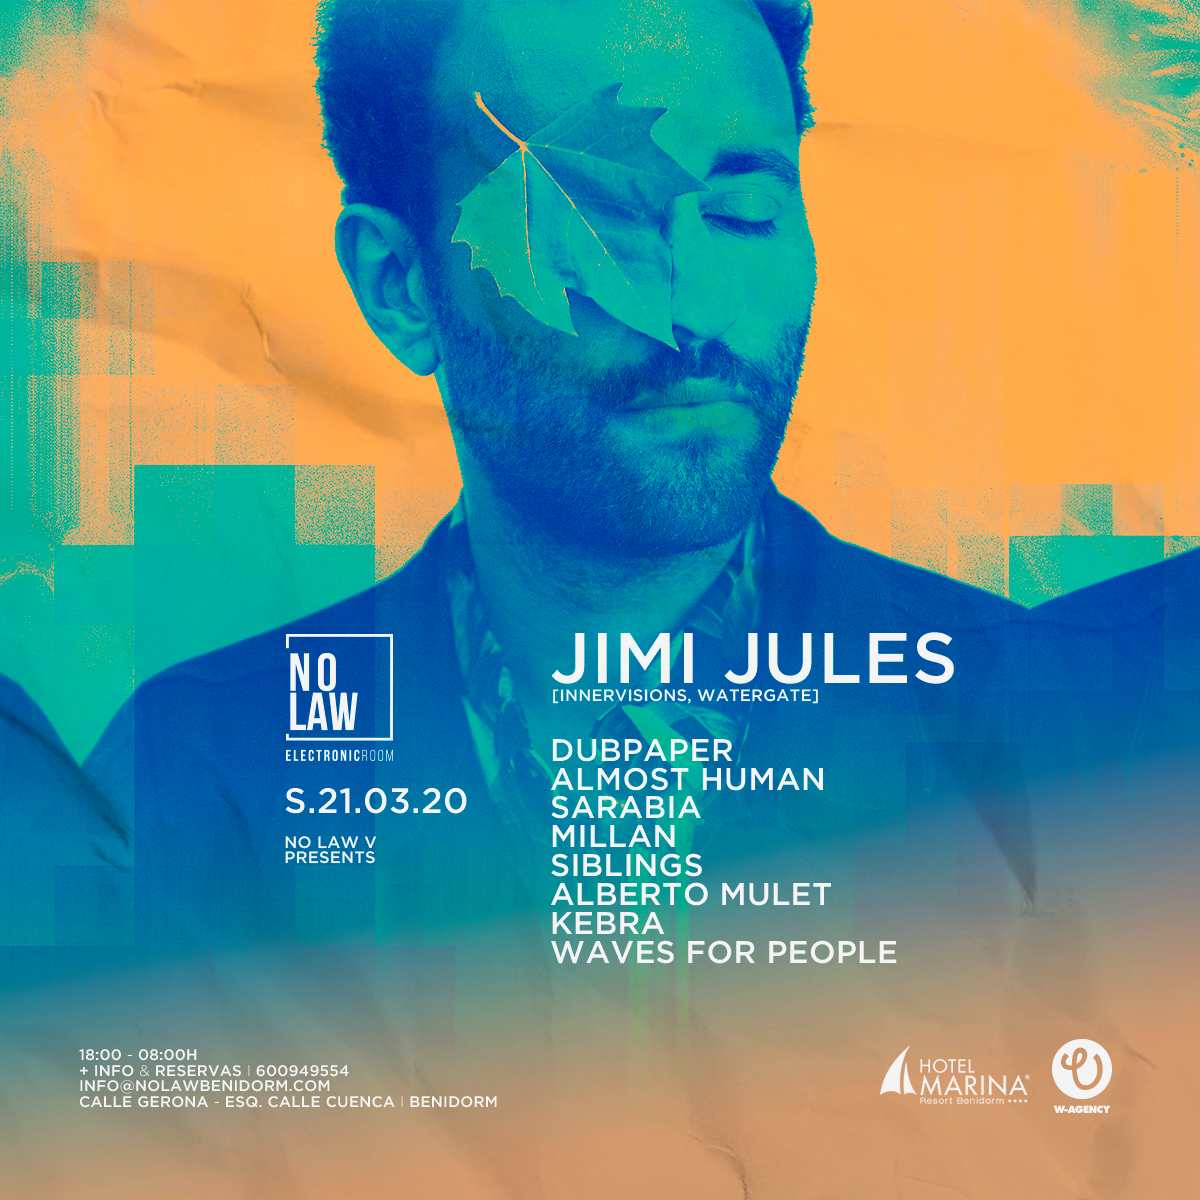 NO LAW V presents JIMI JULES